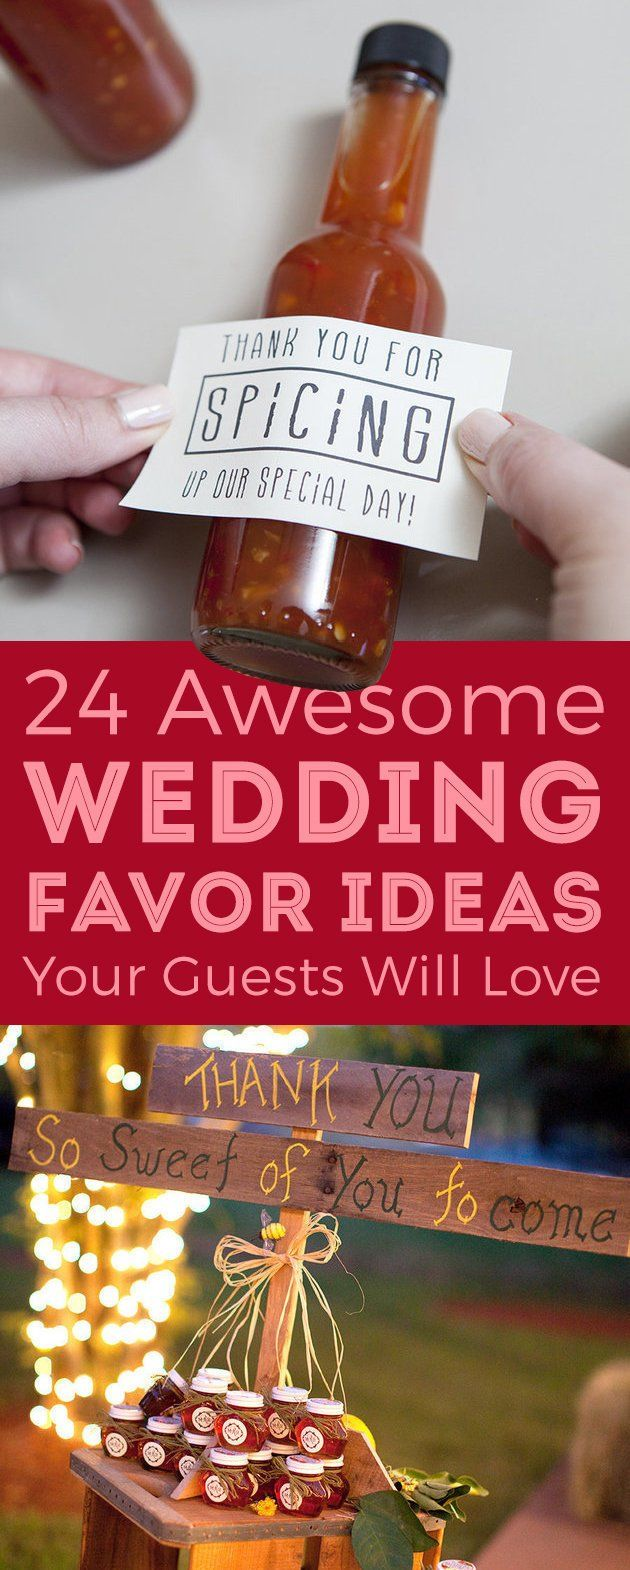 Looking for great DIY wedding favor ideas? Here are 24 easy wedding favors for the DIY bride on a budget that your guests will be sure to appreciate.